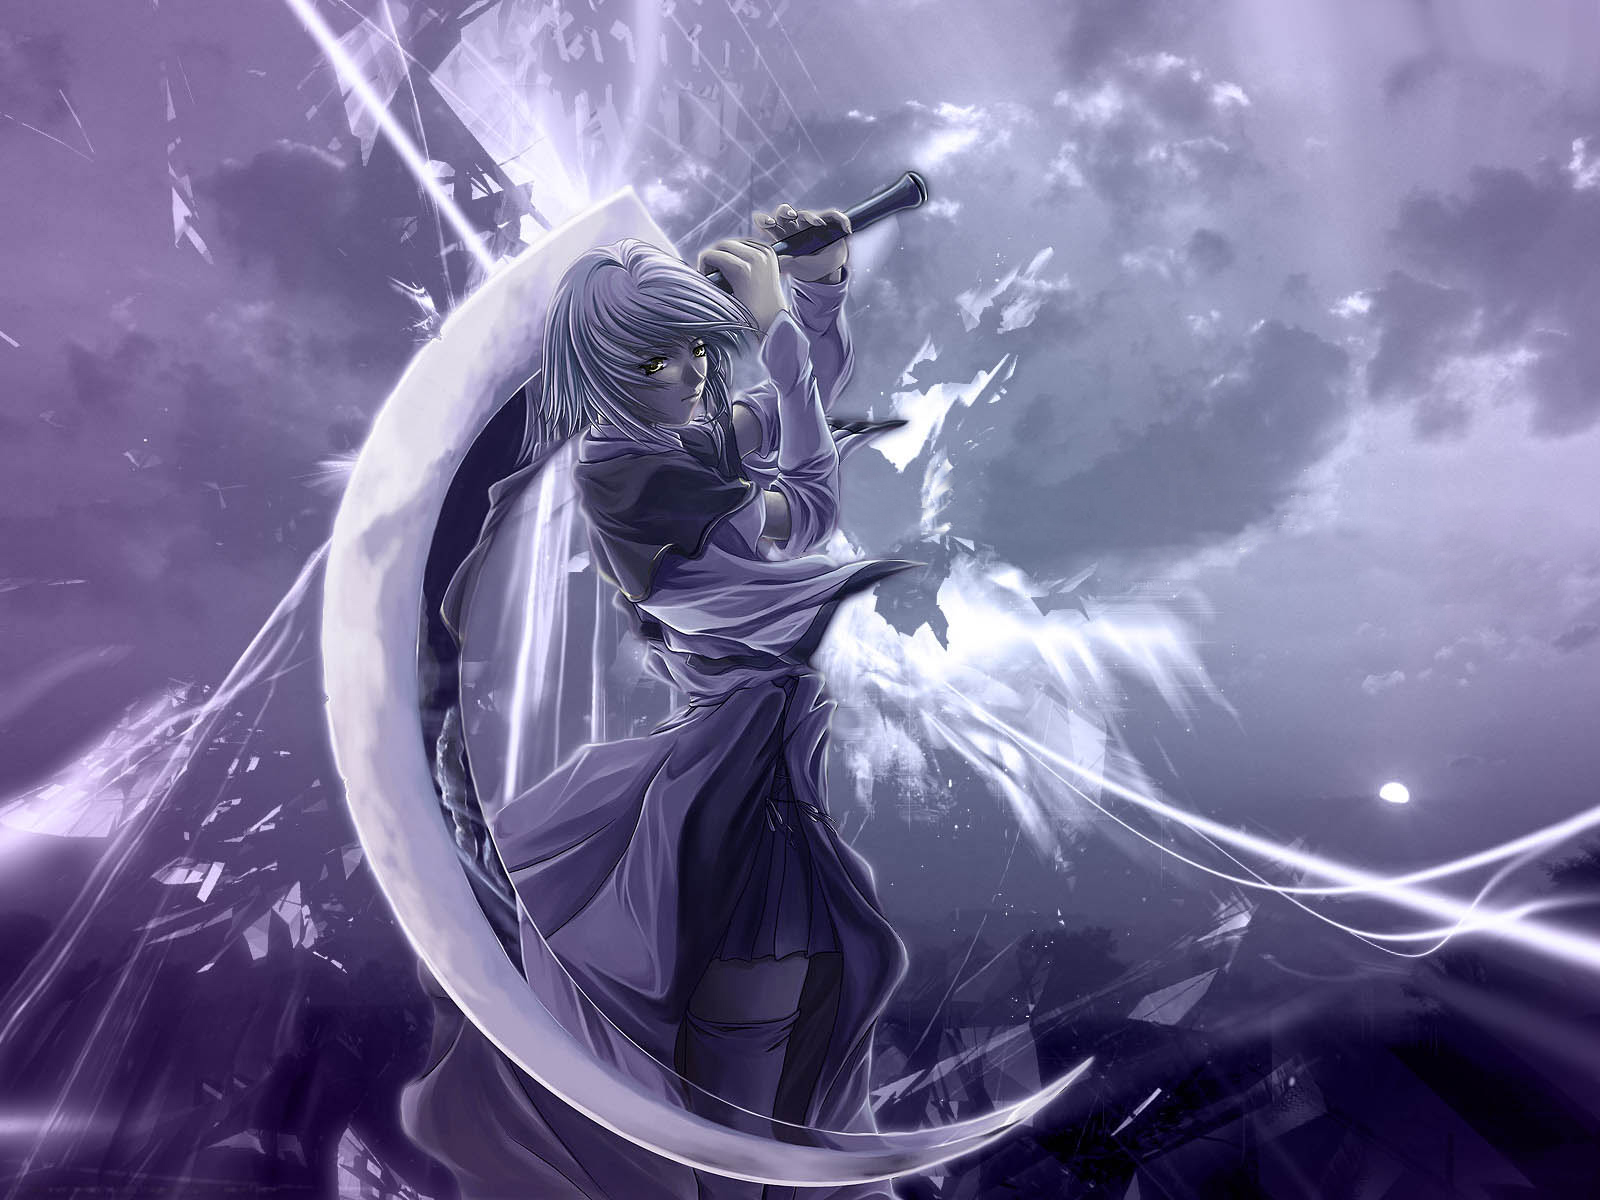 Cool Anime Wallpapers Pictures Hd Wallpapers 1600x1200